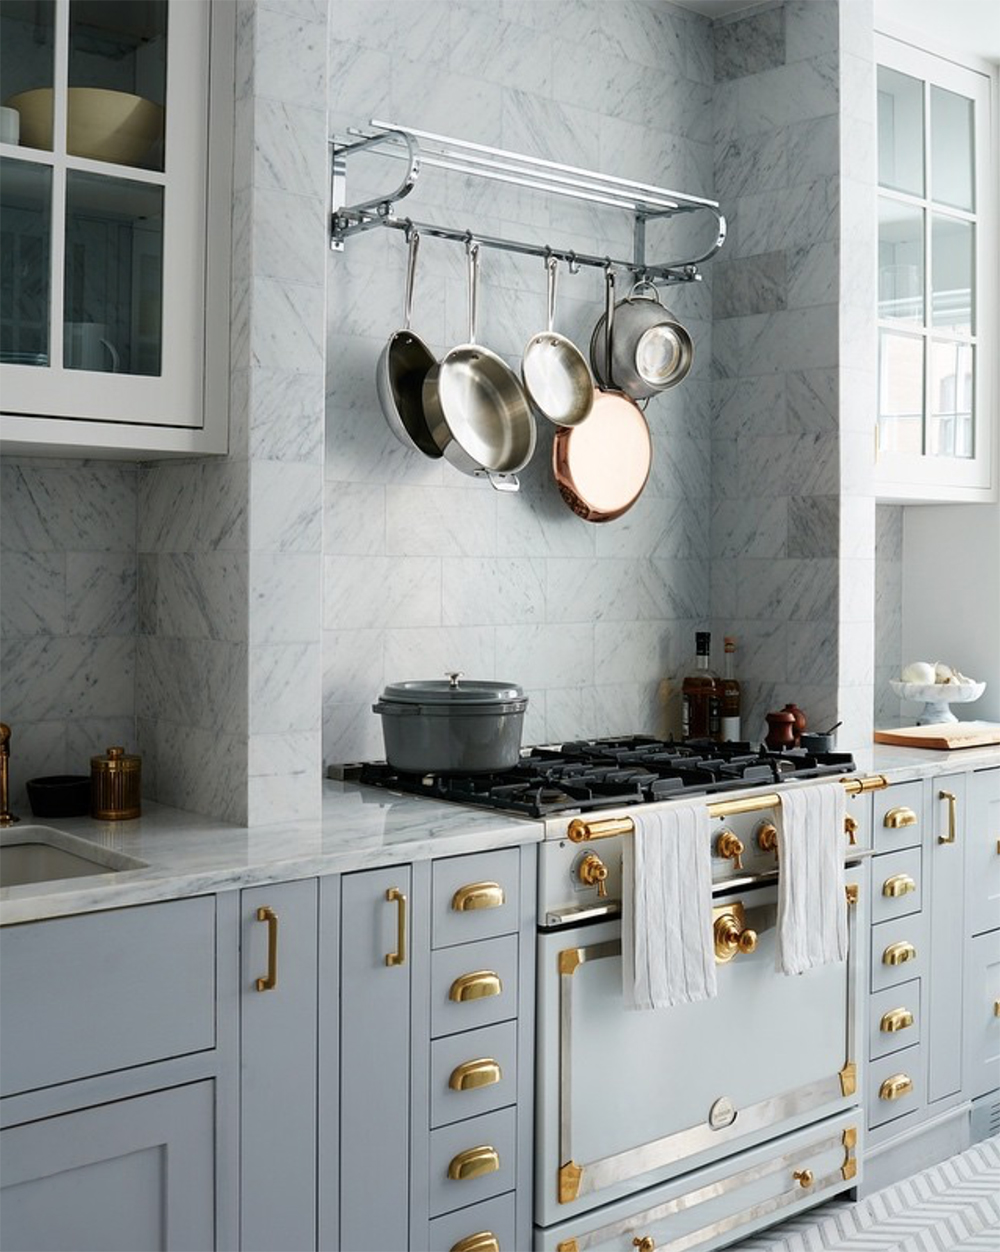 10 Pins : Kitchen Edition - roomfortuesday.com